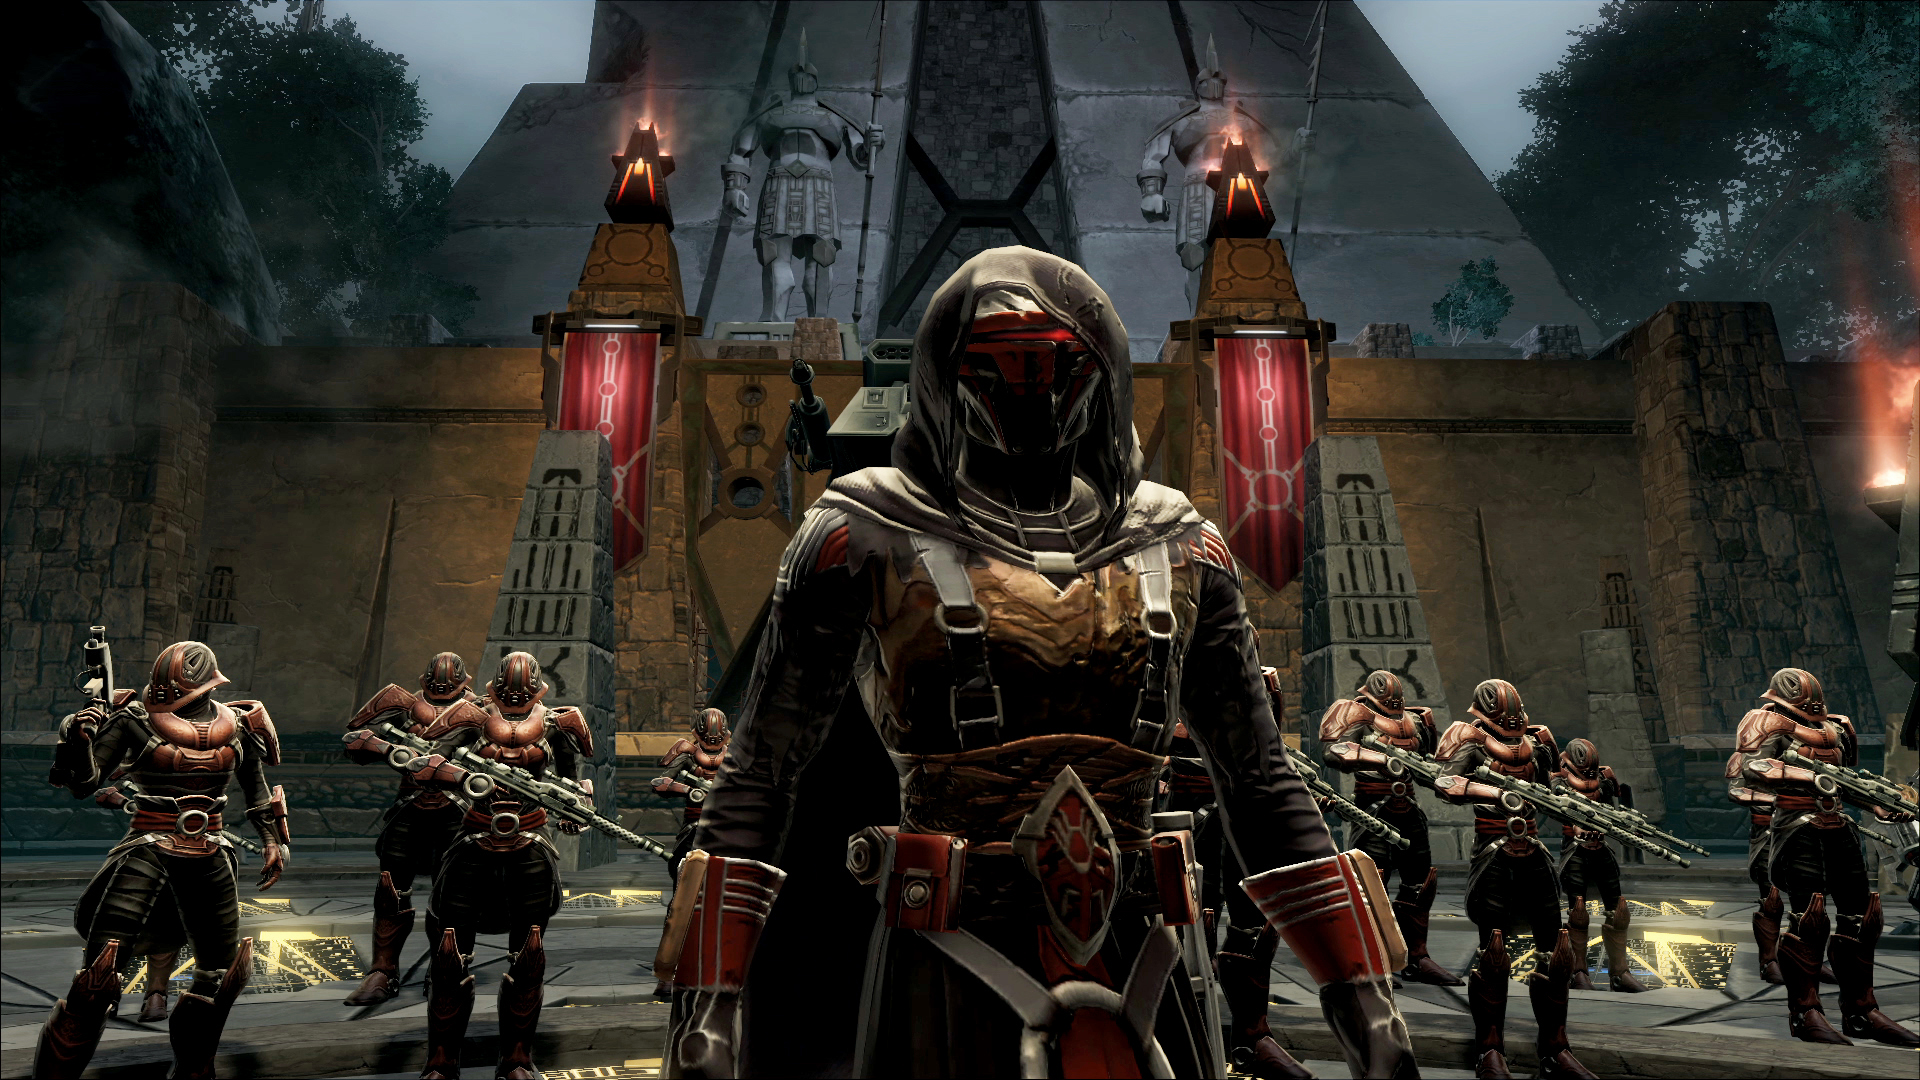 Hudson And Darrah Have Been With The Studio Since Before Its Break, Star Wars: Knights Of The Old Republic. The Spin-Off Mmorpg, The Old Republic, Continues To Thrive.